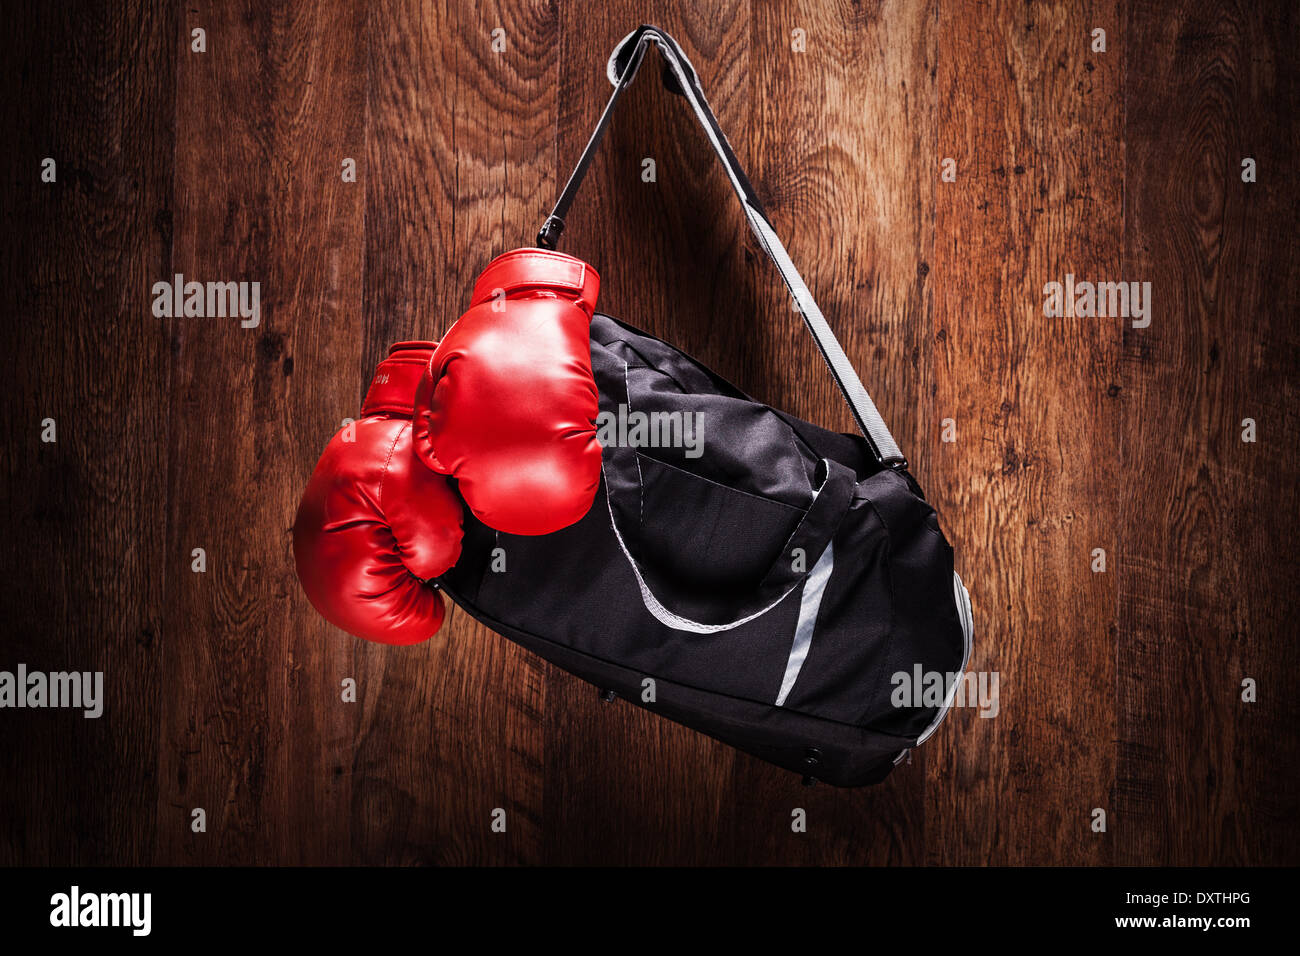 Sports bag and boxing gloves hanging on a wooden wall - Stock Image